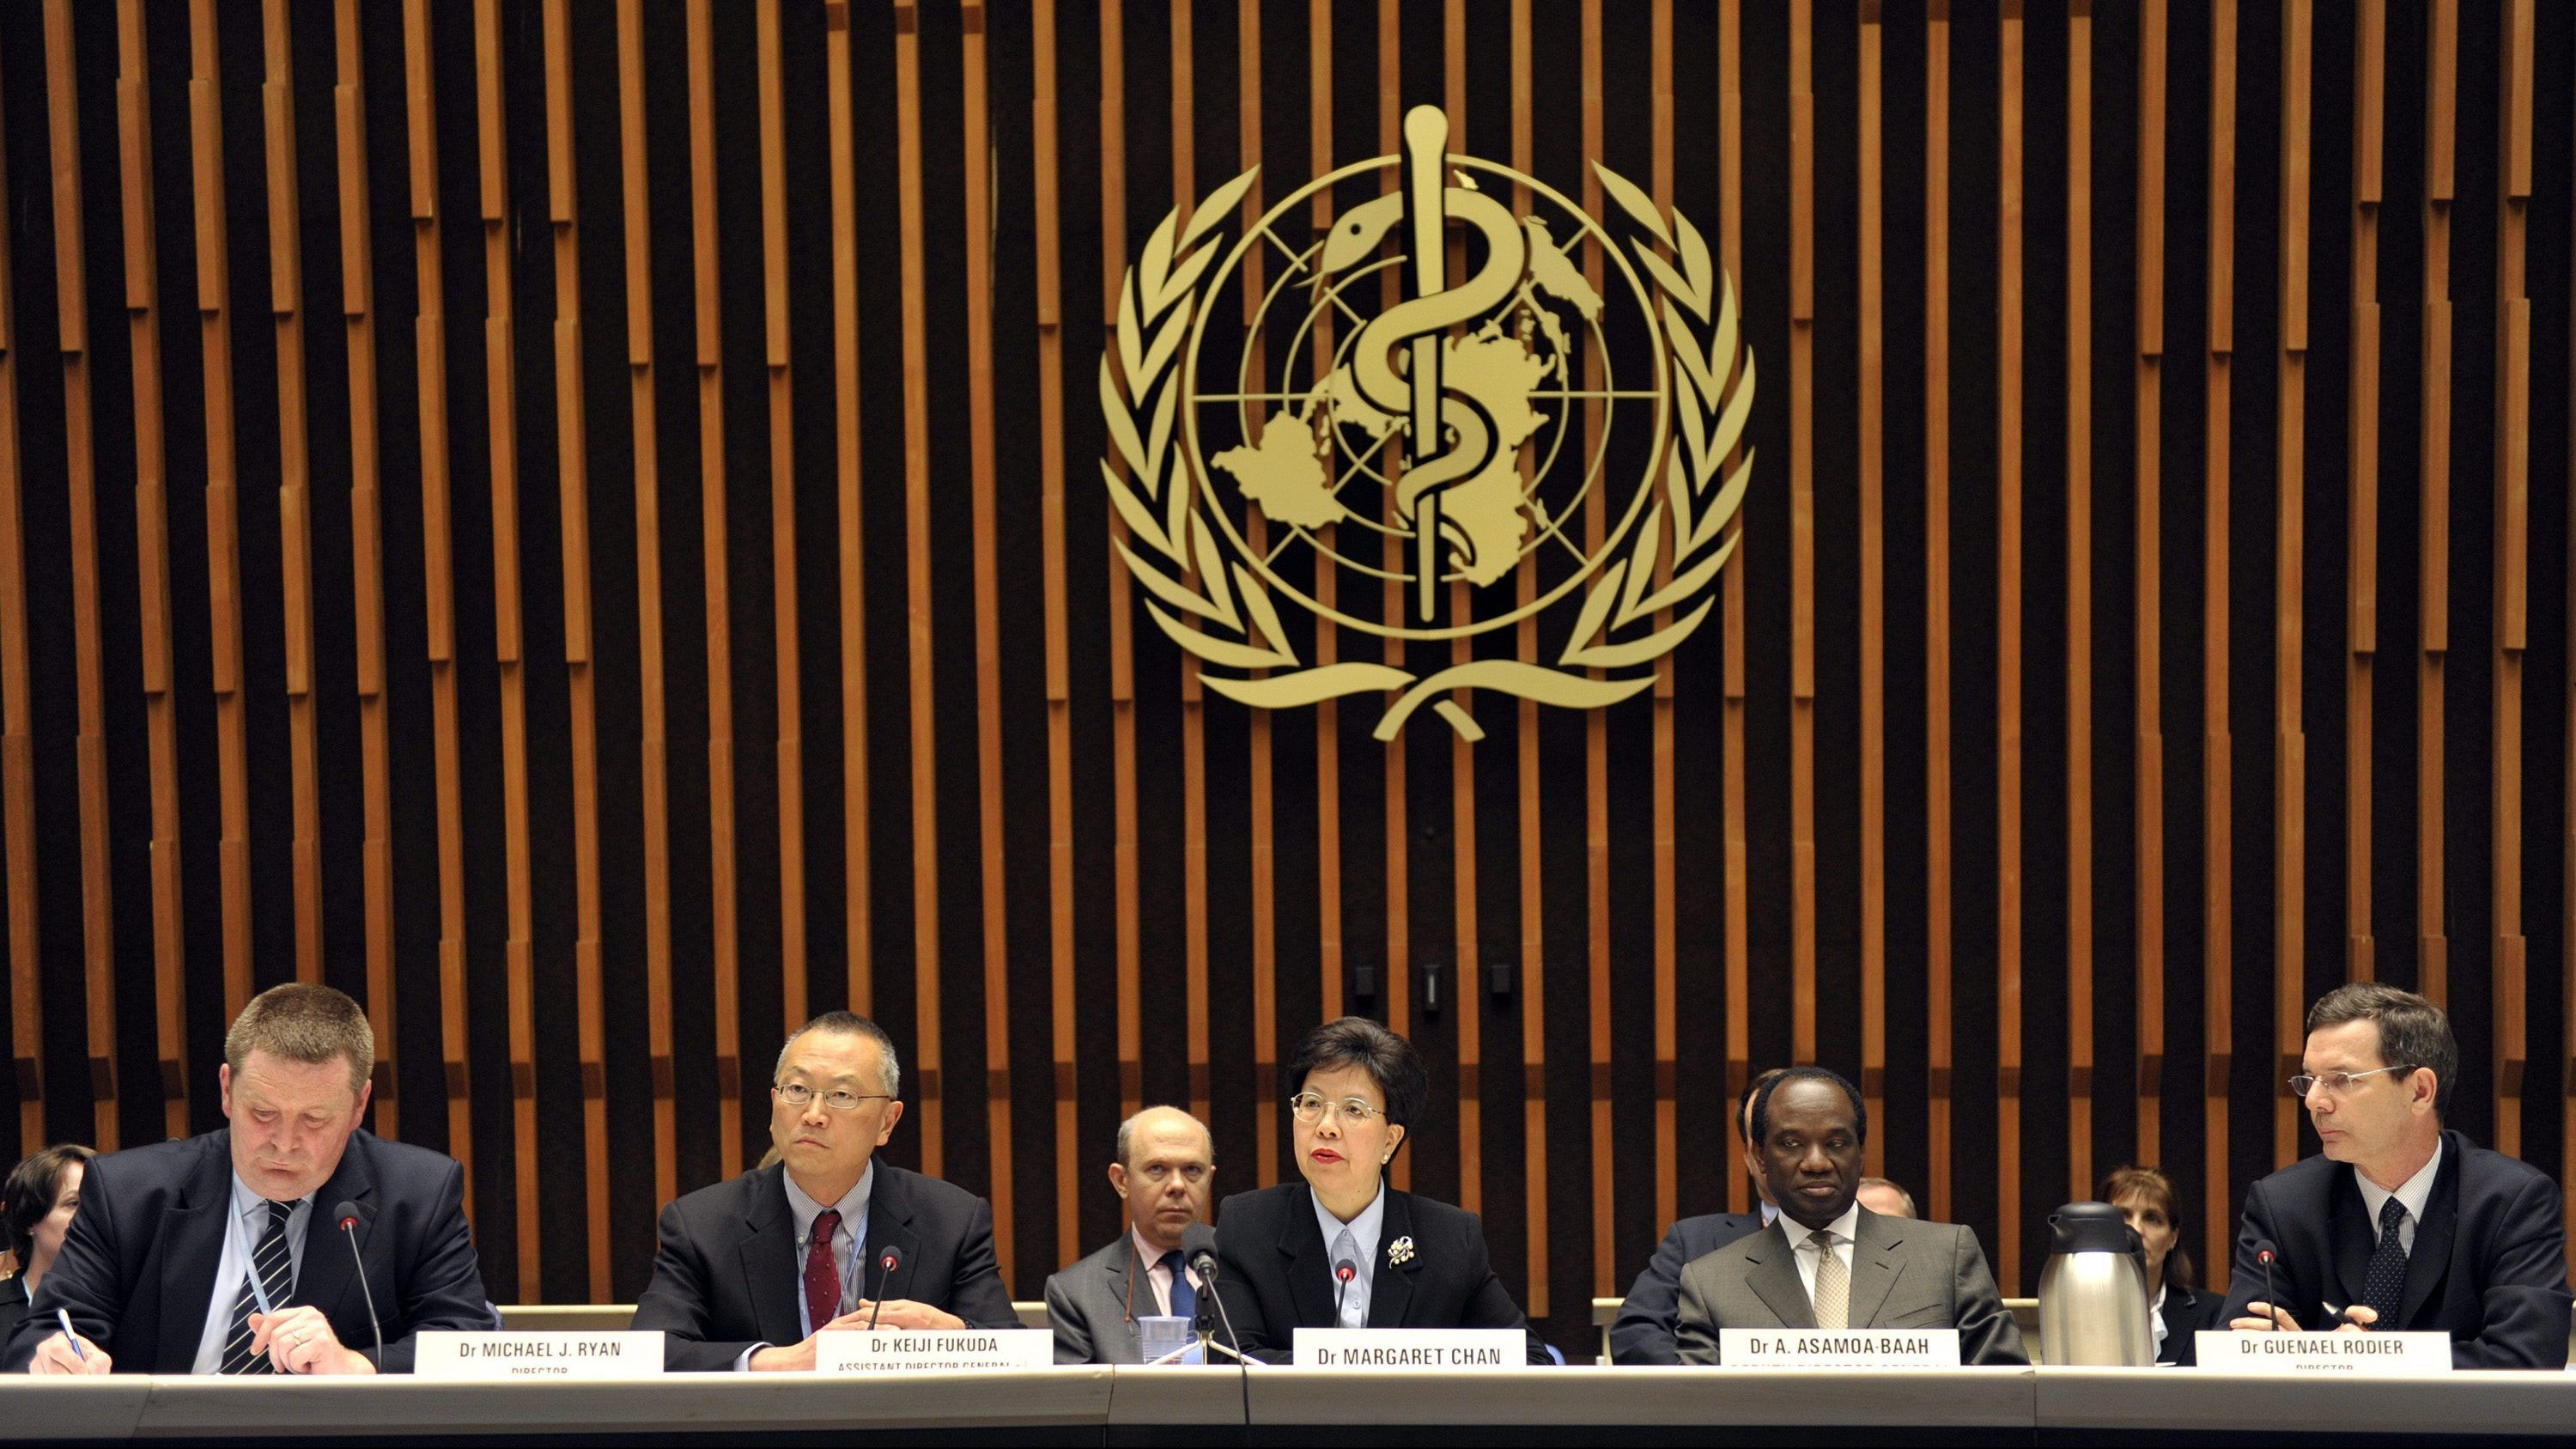 The world's leaders are engaged in a familiar debate: public health or sovereignty?